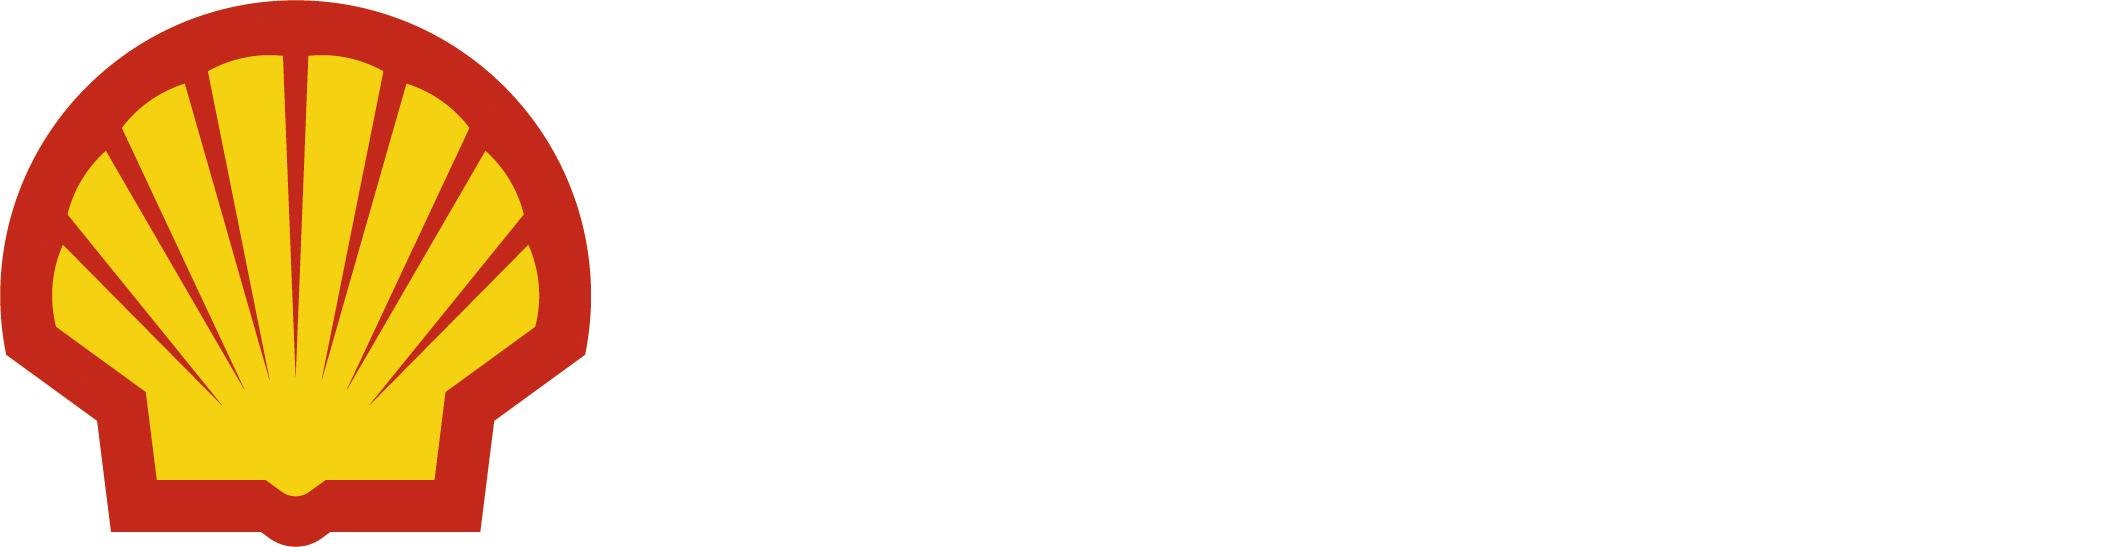 shell_logo1.png